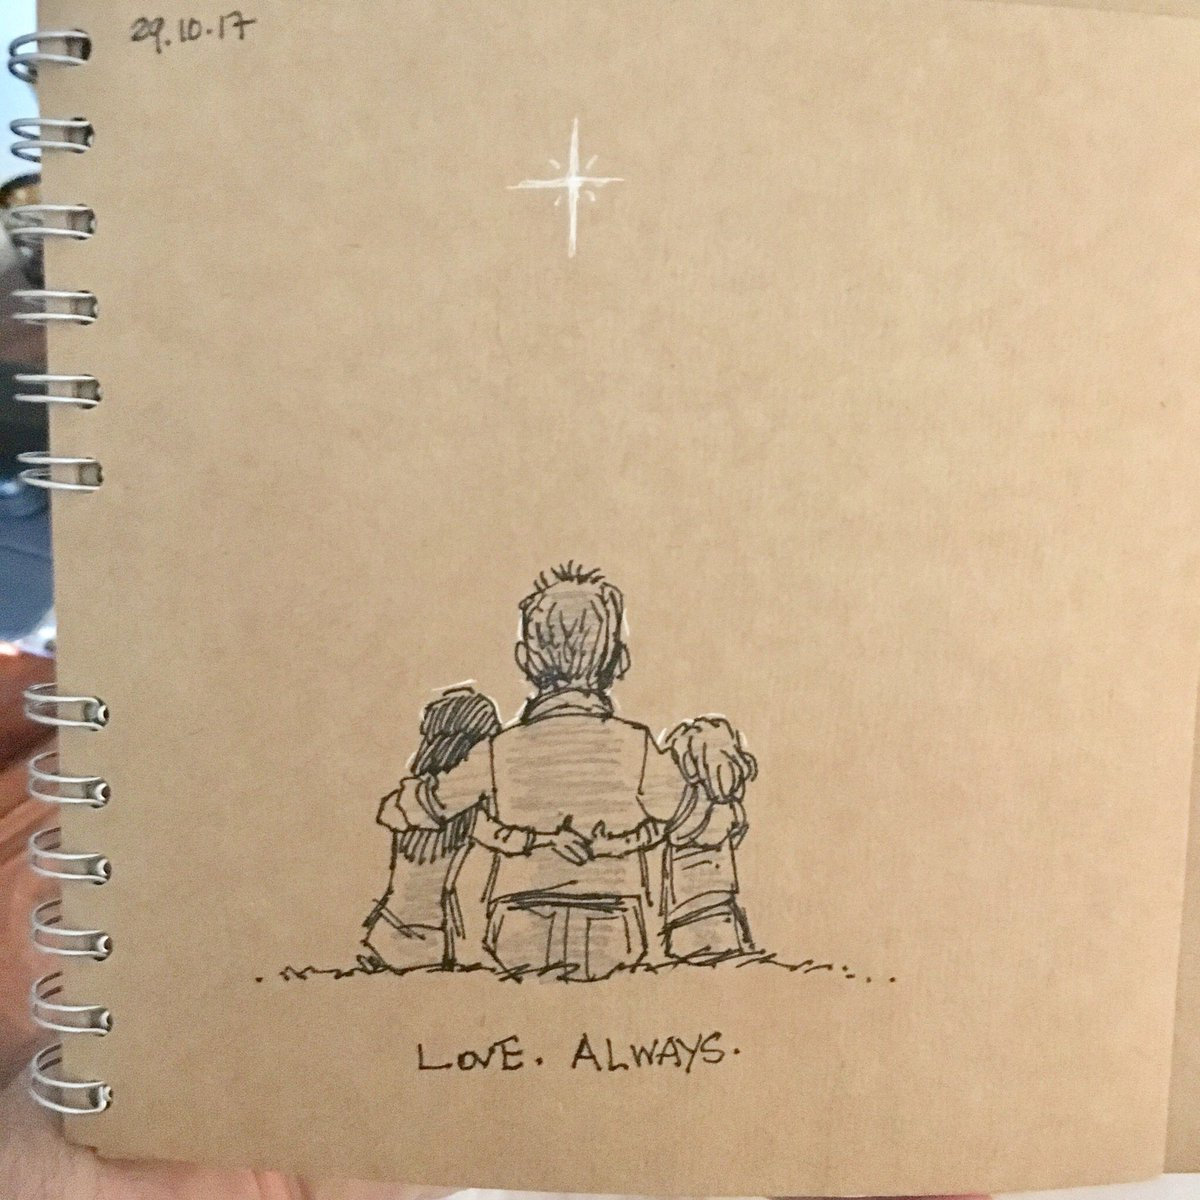 Animator Keeps Late Wife's Memory Alive Through Heartfelt Sketchbook Doodles